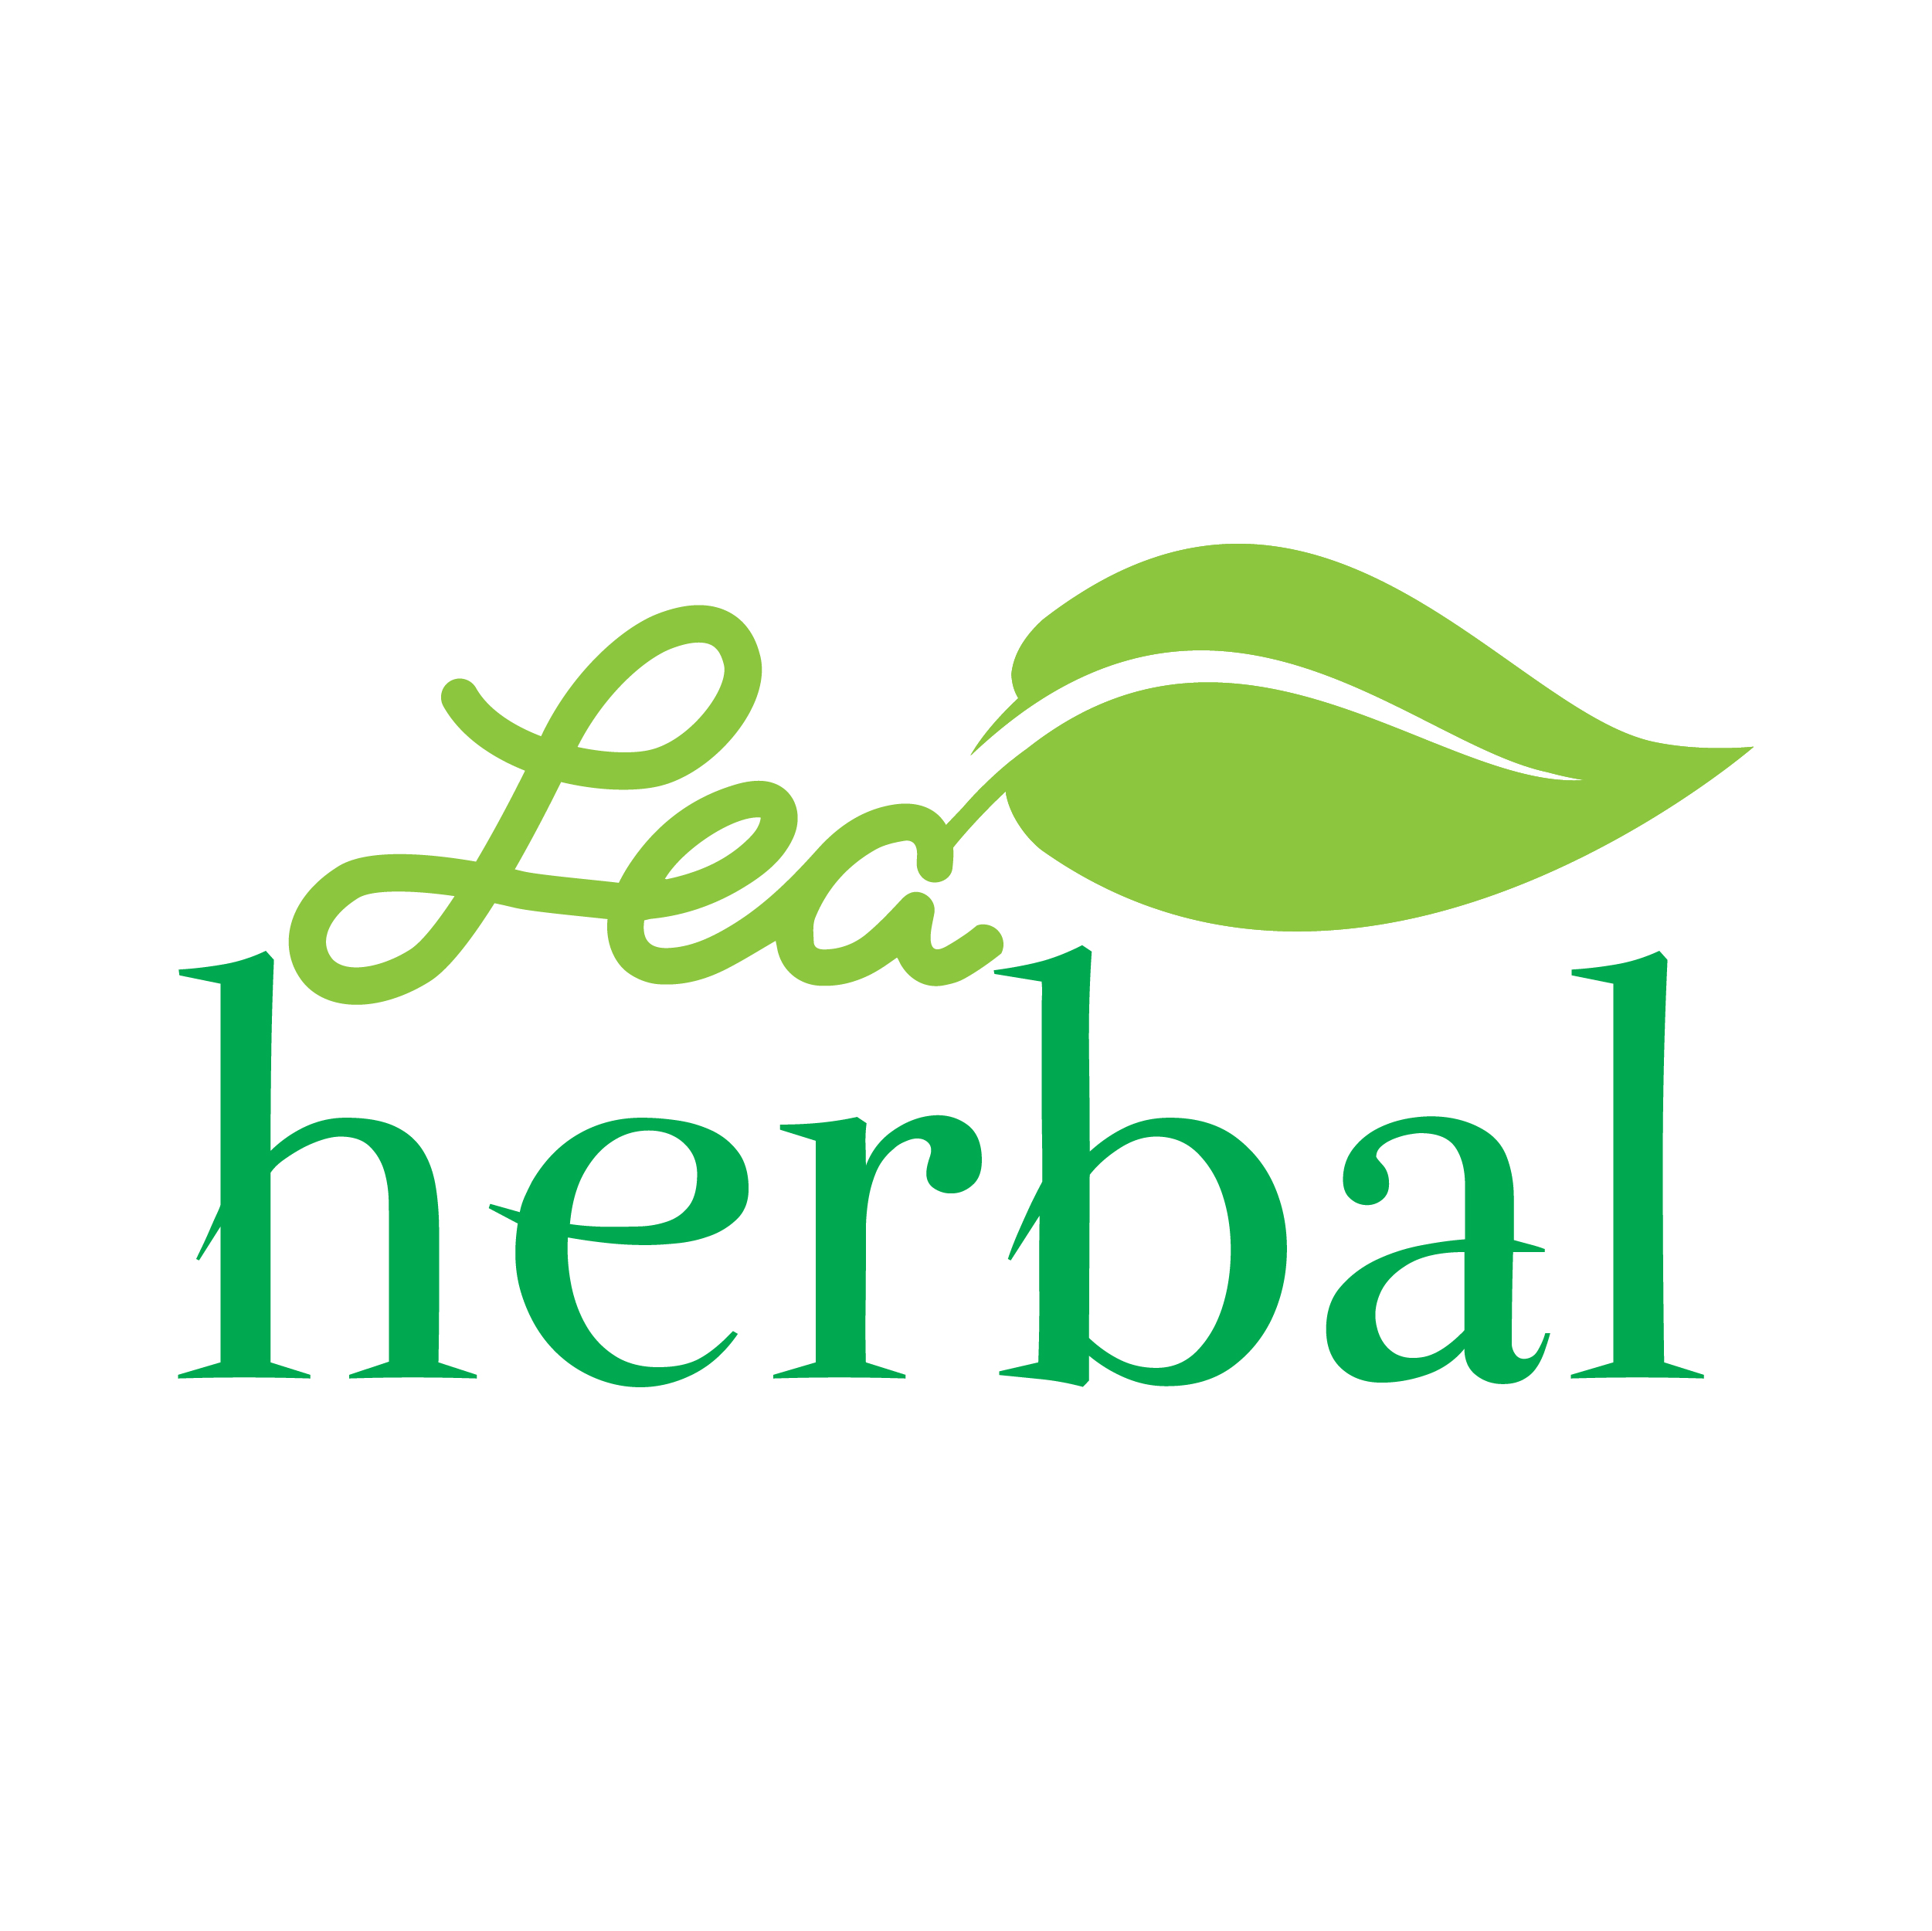 LEA HERBAL OILS